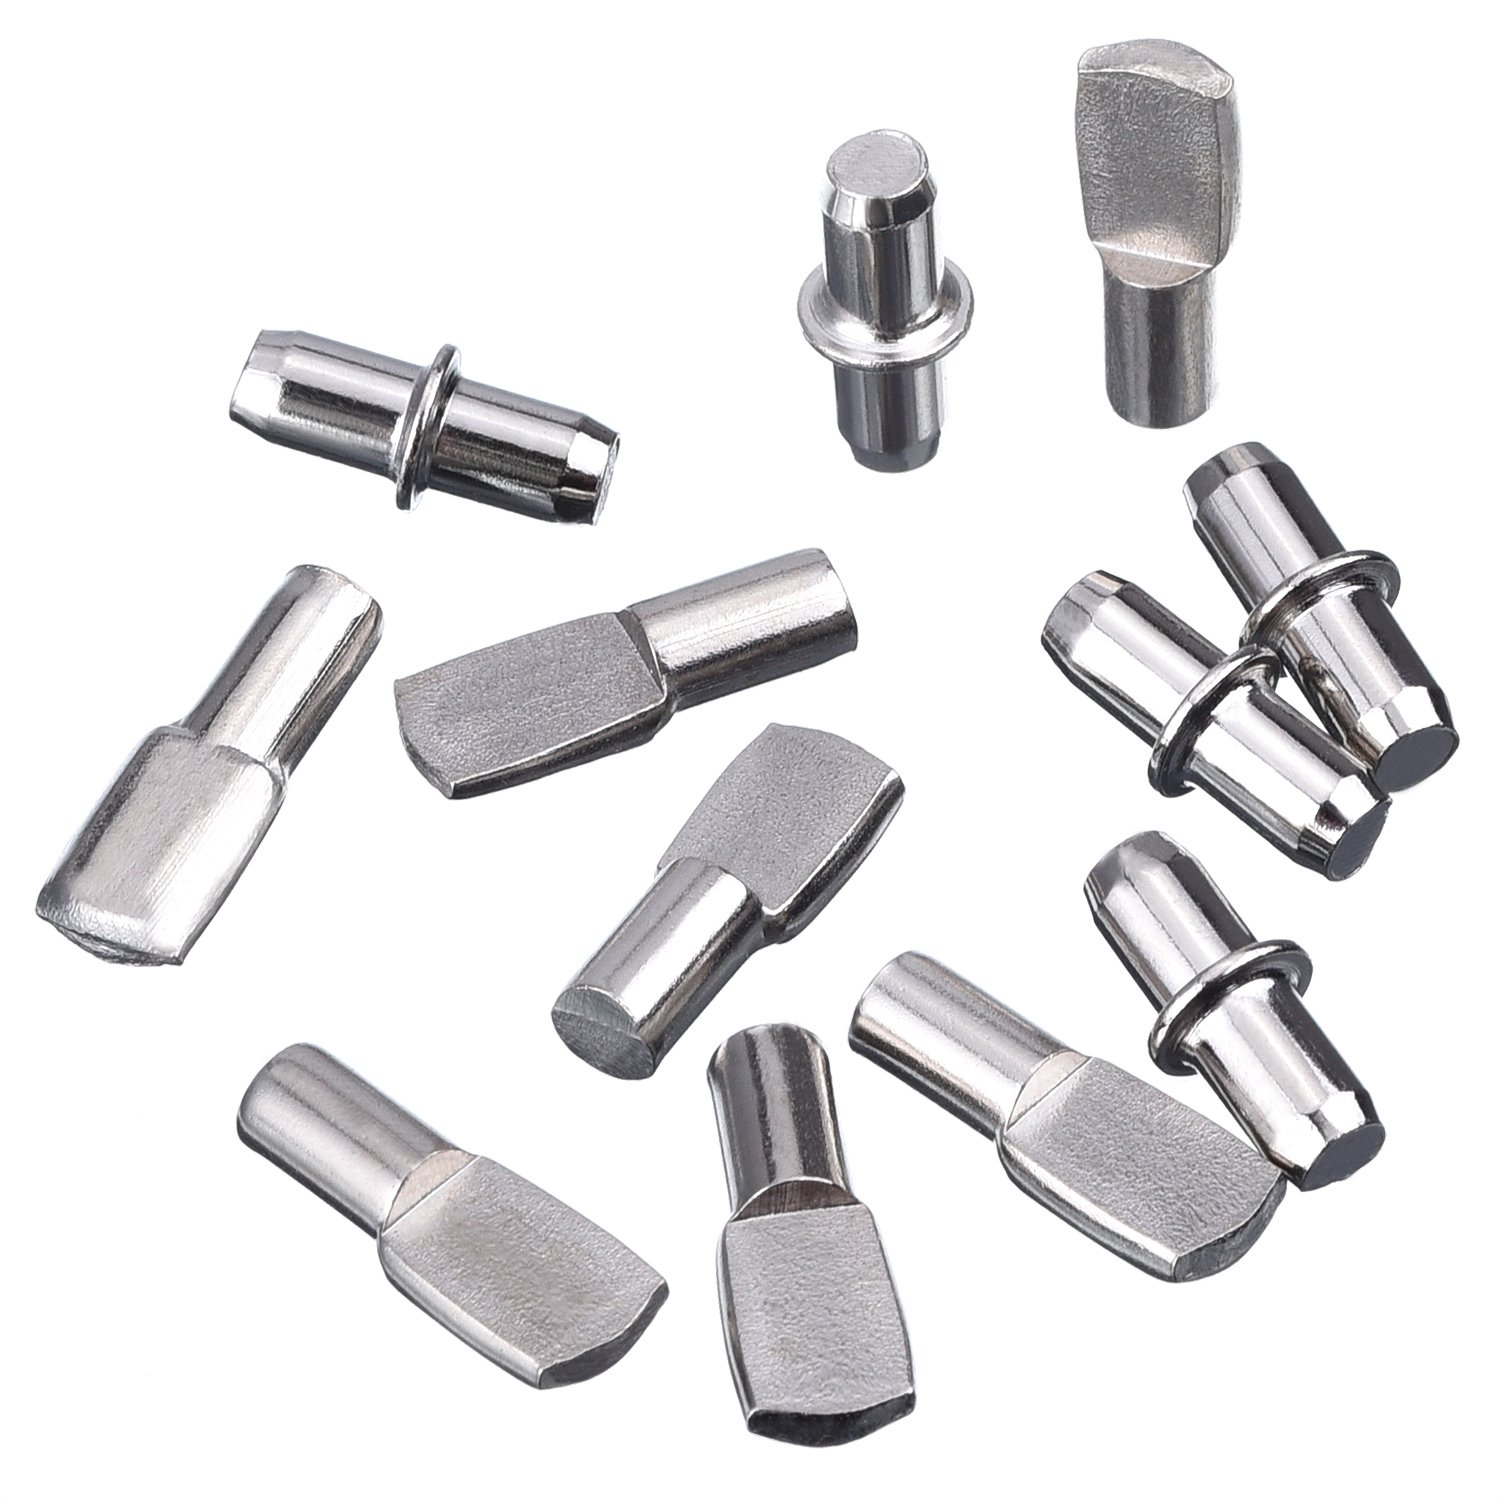 eboot hardware 100 pieces stainless steel shelf pins